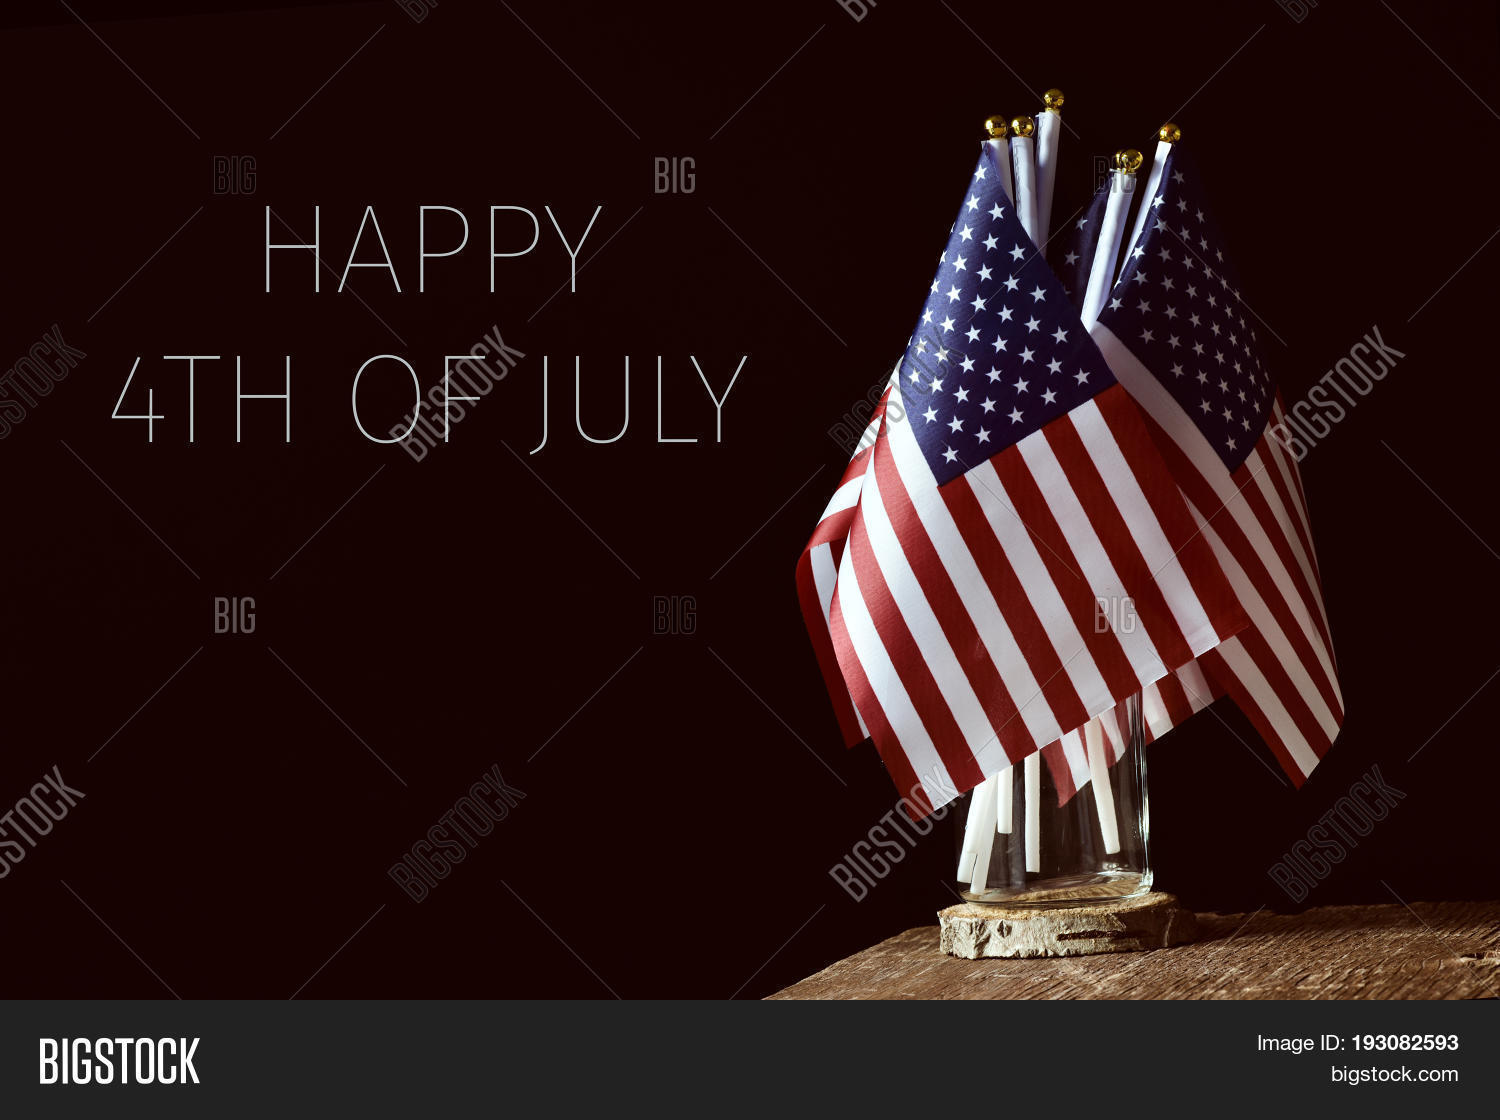 Some American Flags In A Glass Jar On Rustic Wooden Surface And The Text